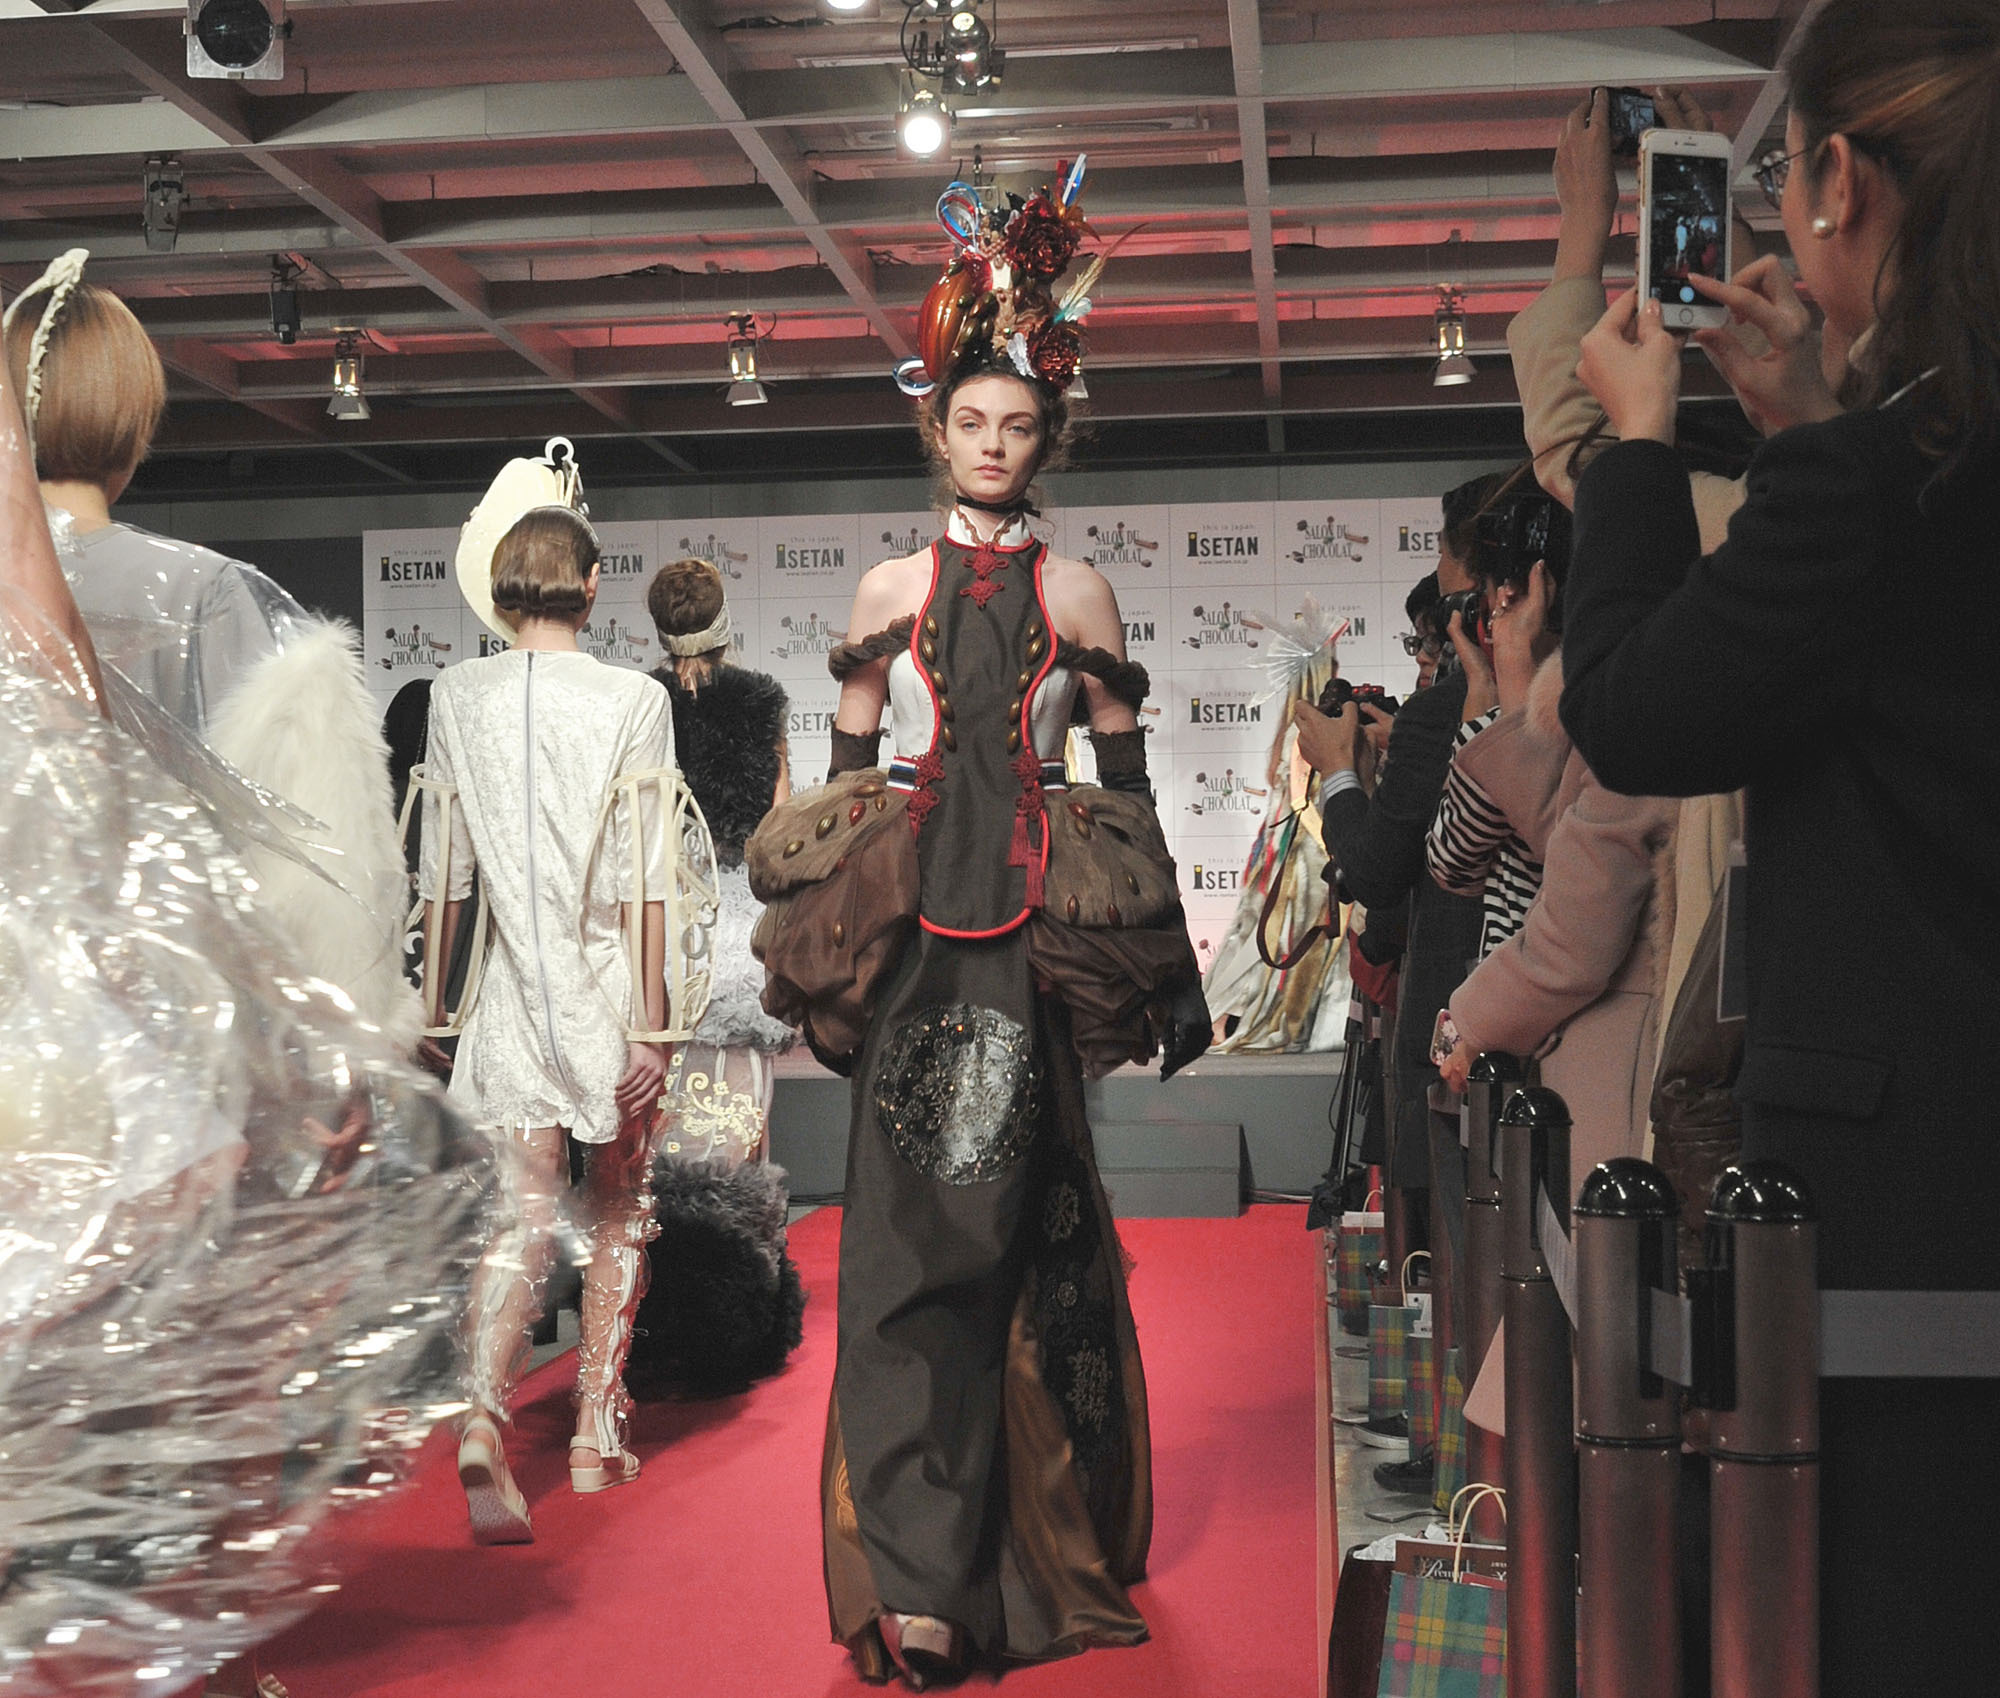 Models walk the runway in a chocolate-inspired fashion show in the Shinjuku NS Building on Jan. 26, the press day for the Salon du Chocolat 2016 Isetan, which boasts creations from about 100 chocolatiers from 19 countries. | YOSHIAKI MIURA